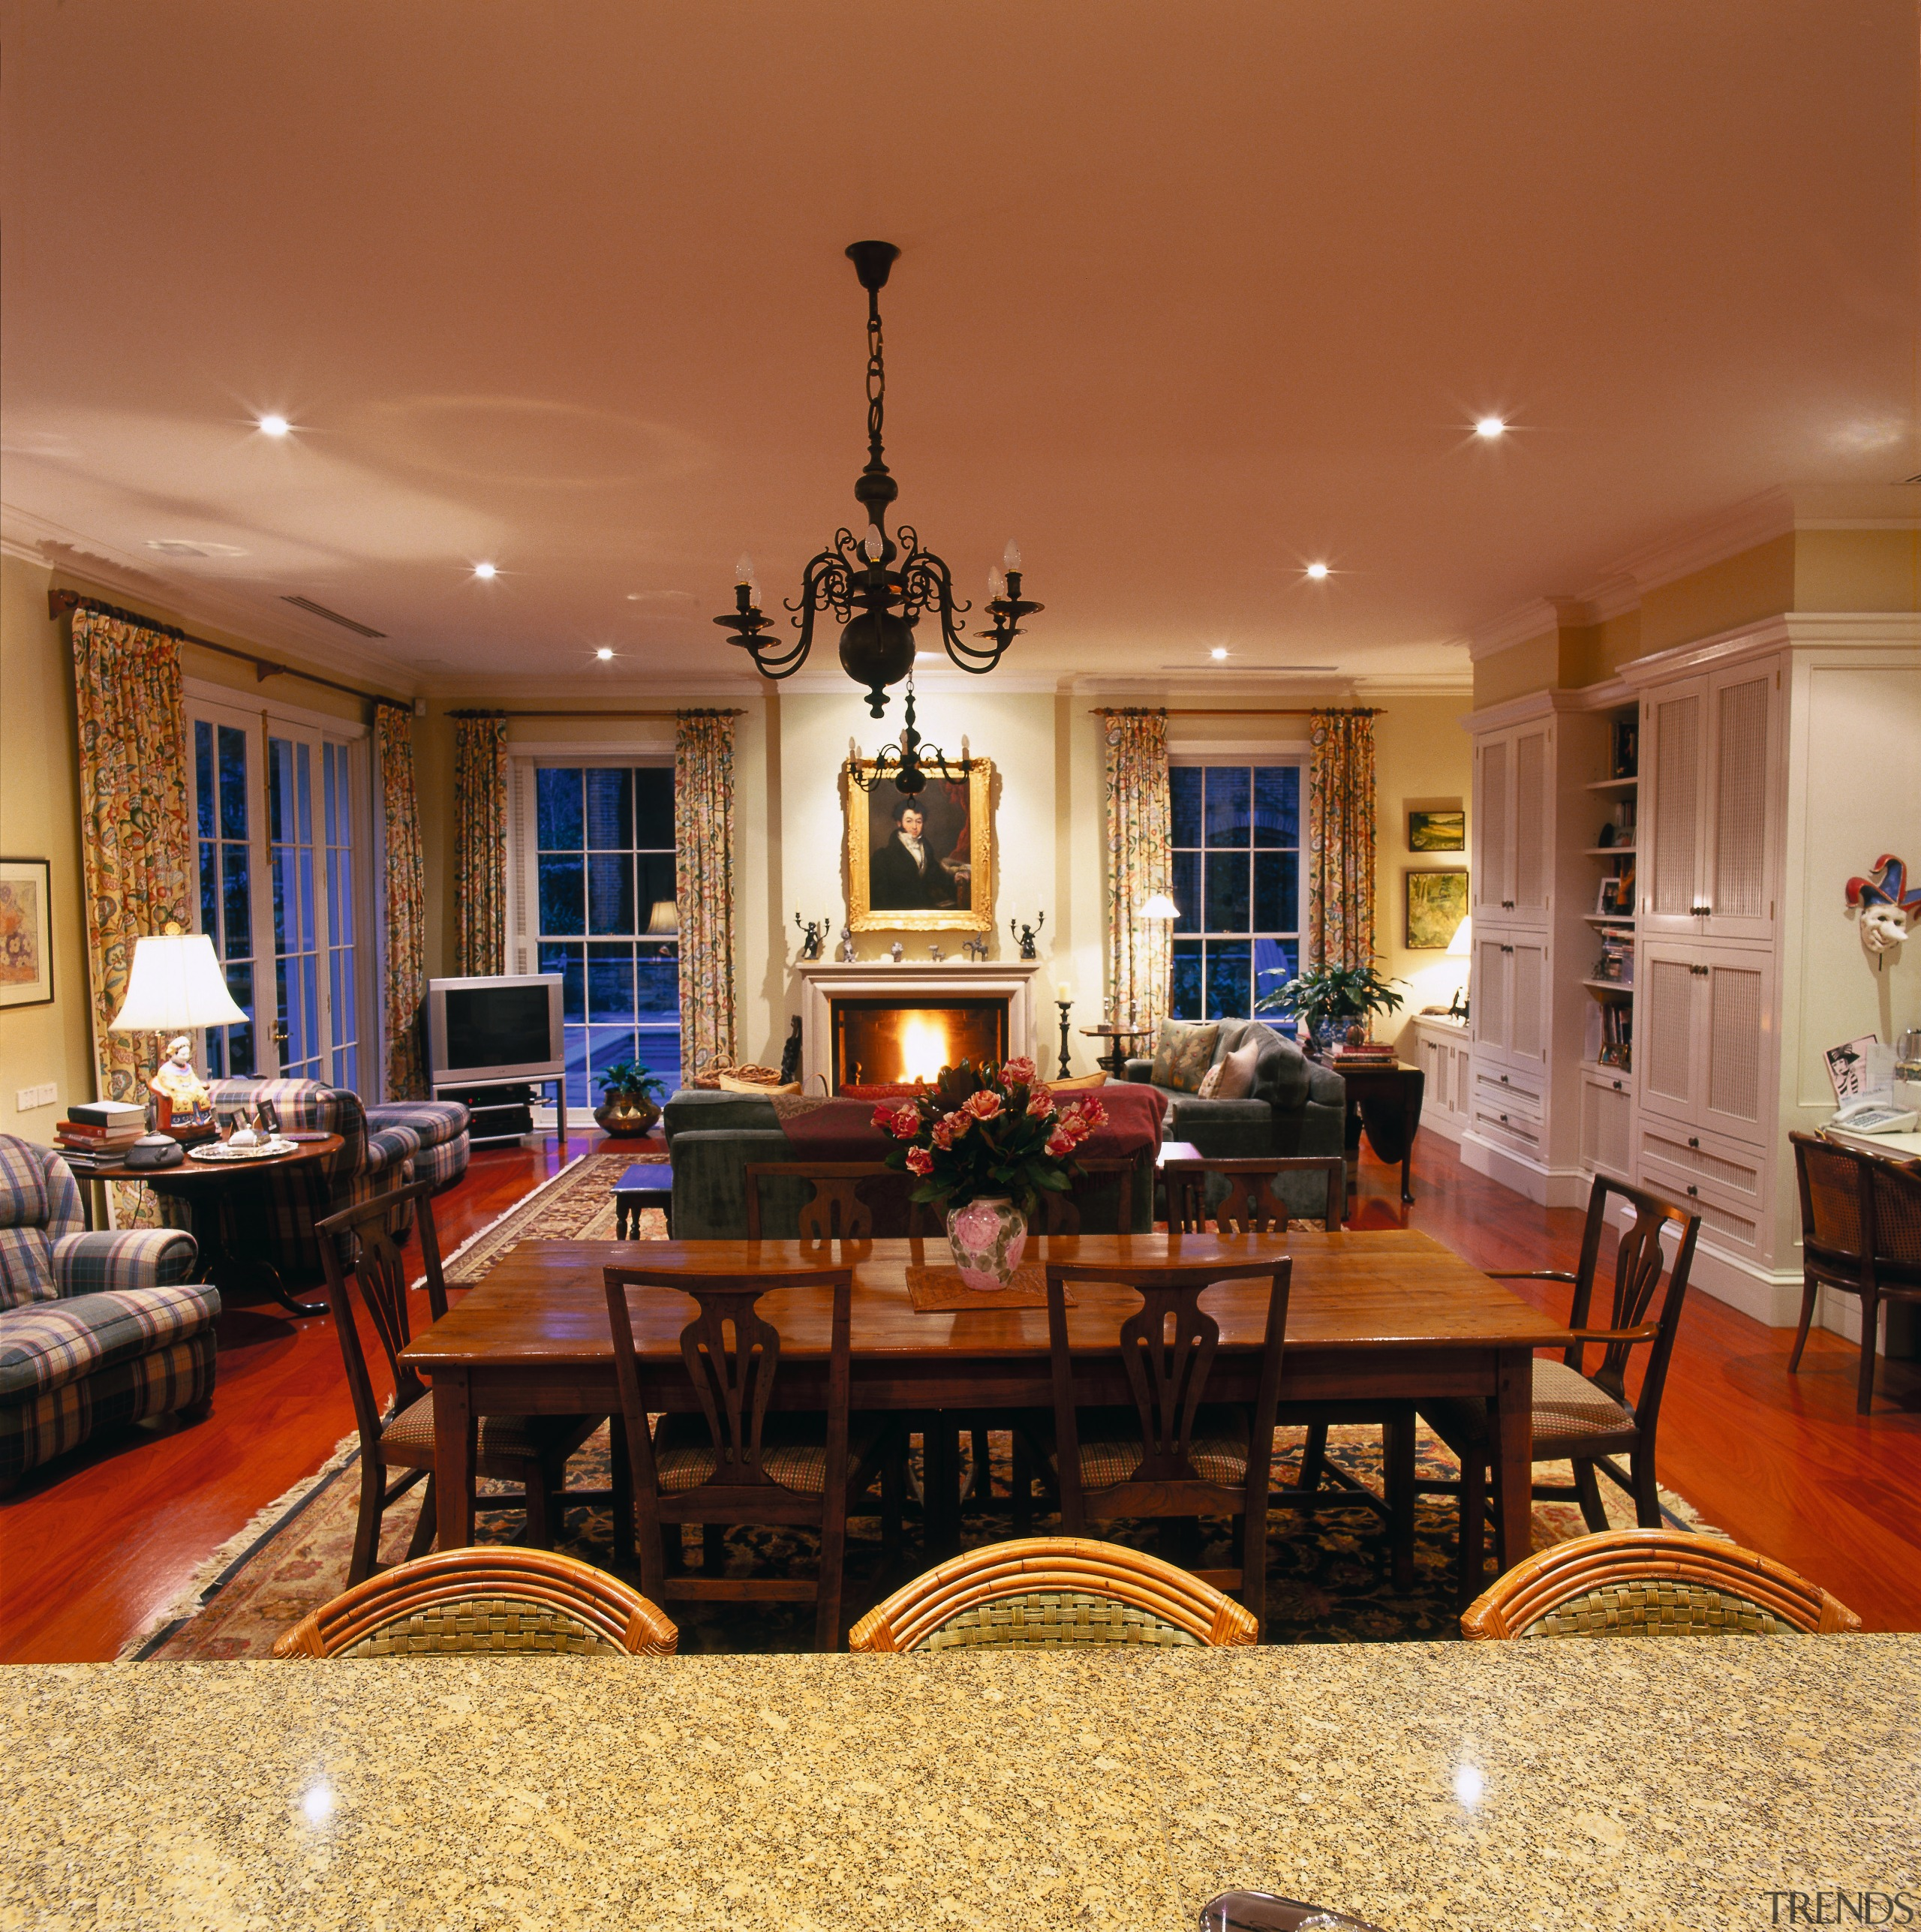 View of the dining & living area - ceiling, dining room, estate, flooring, home, interior design, lighting, living room, real estate, room, table, brown, orange